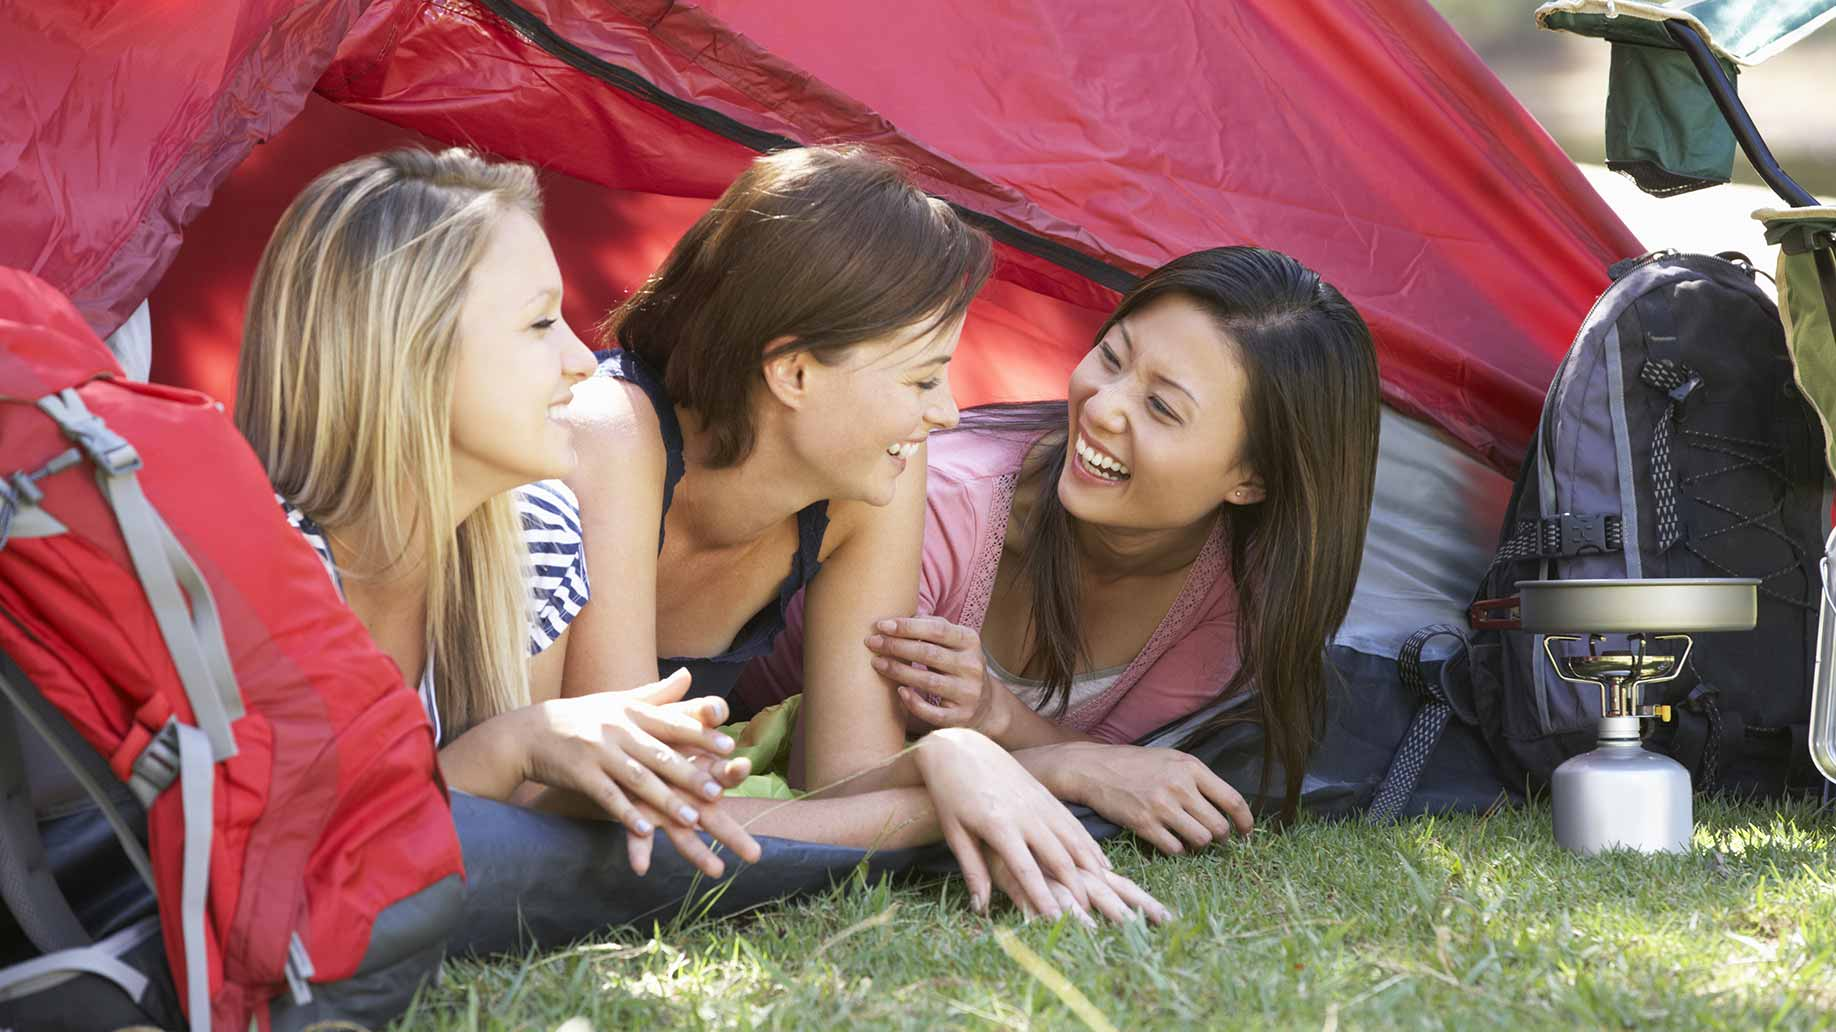 women laughing underneath red tent camping bachelorette party